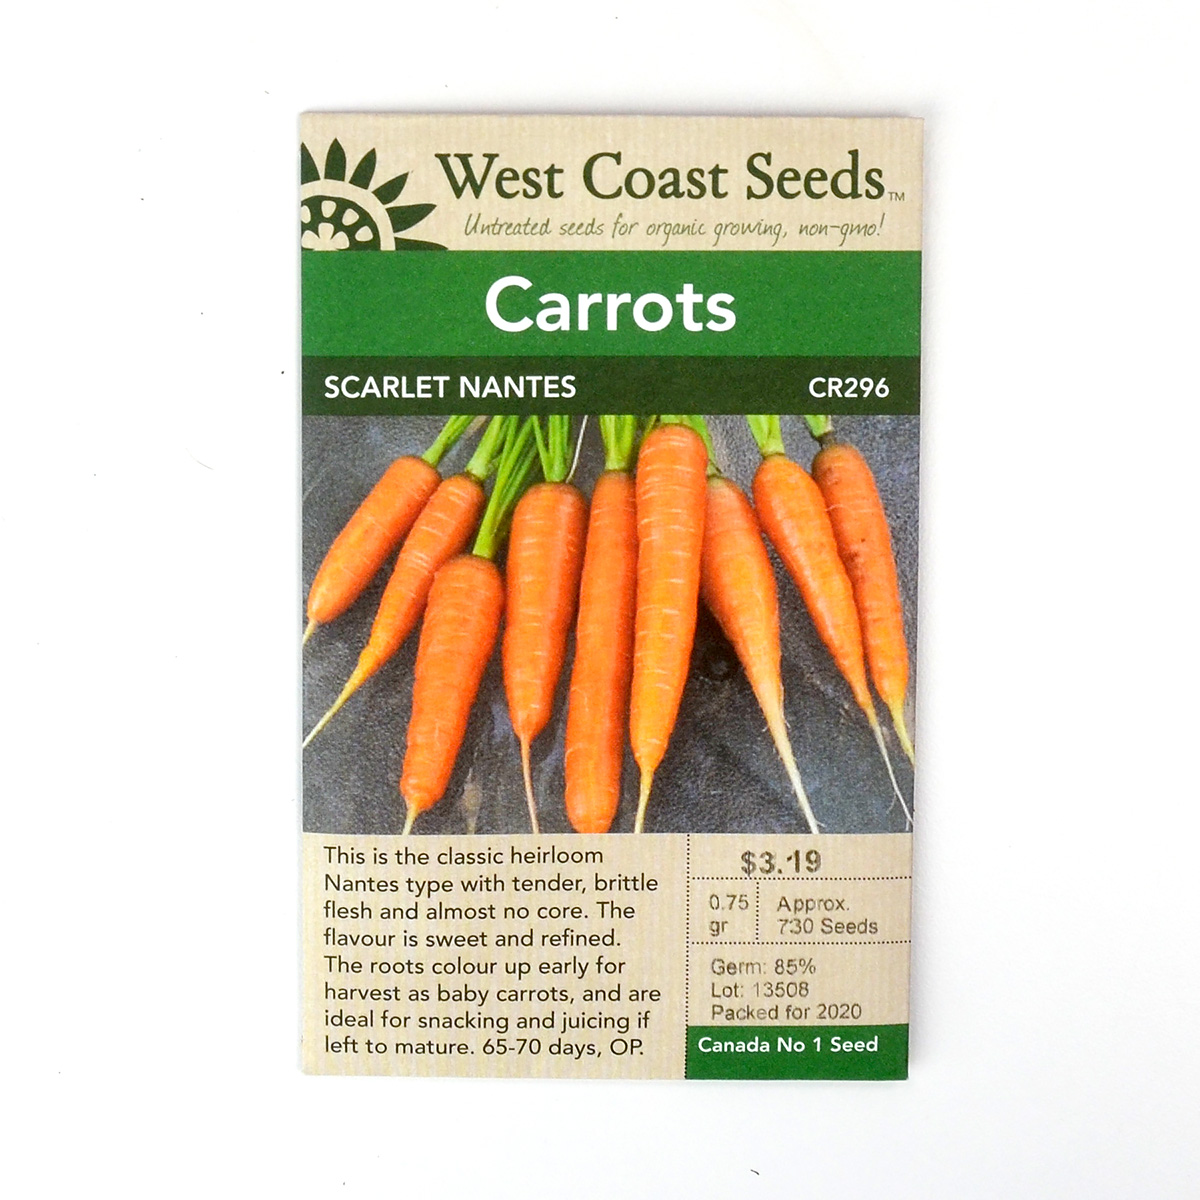 Carrot Scarlet Nantes Seeds CR296